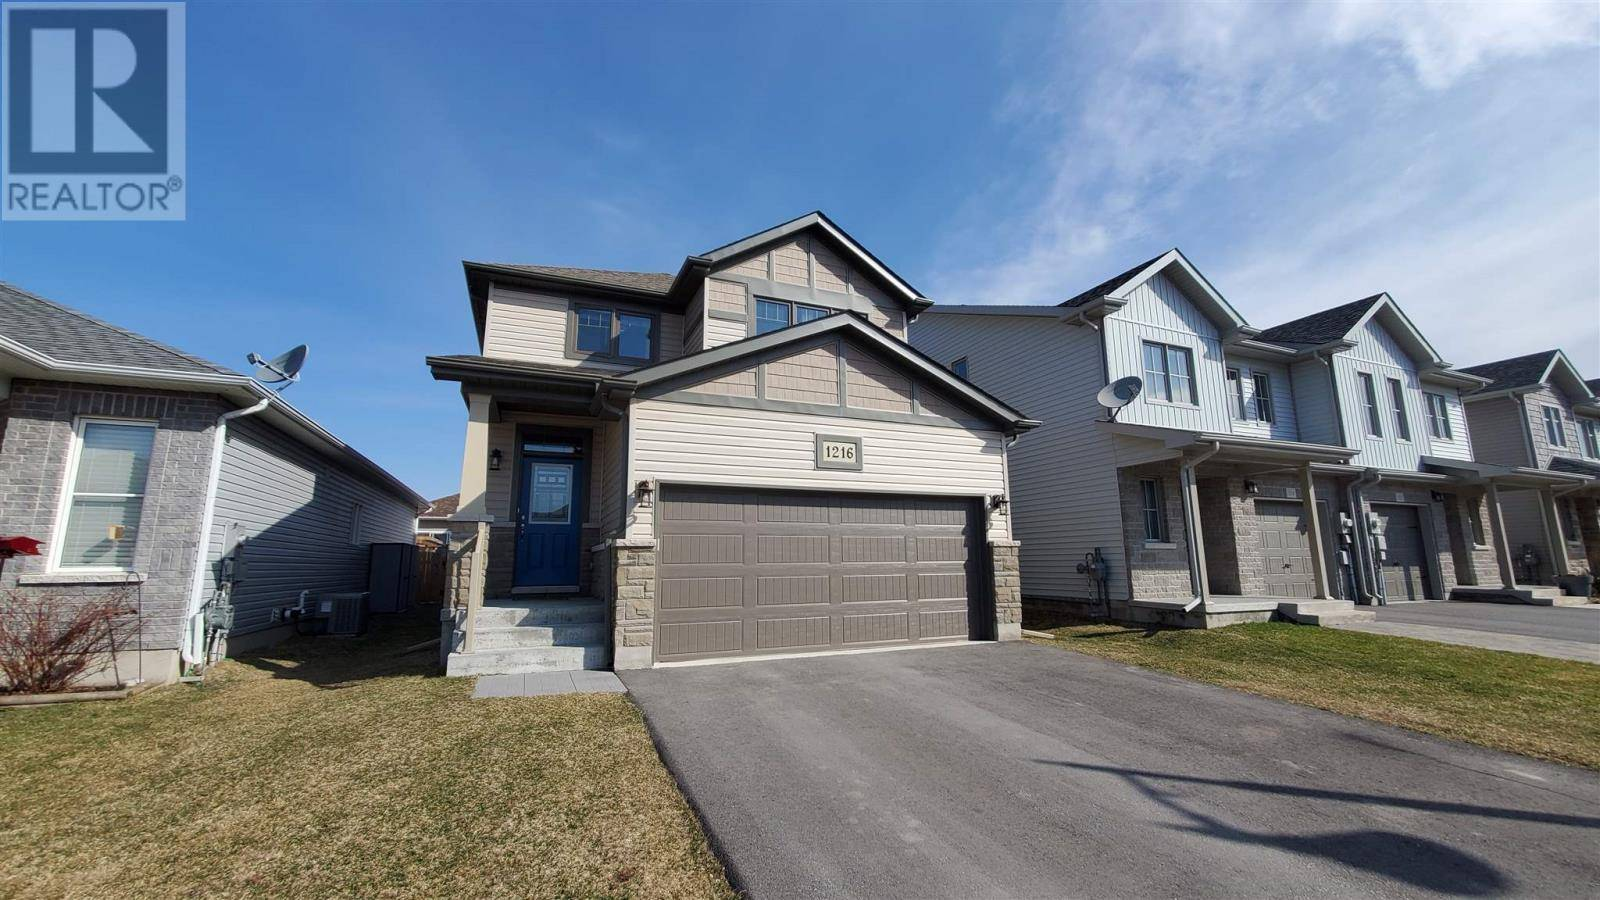 House for sale at 1216 Carfa Cres Kingston Ontario - MLS: K20001685